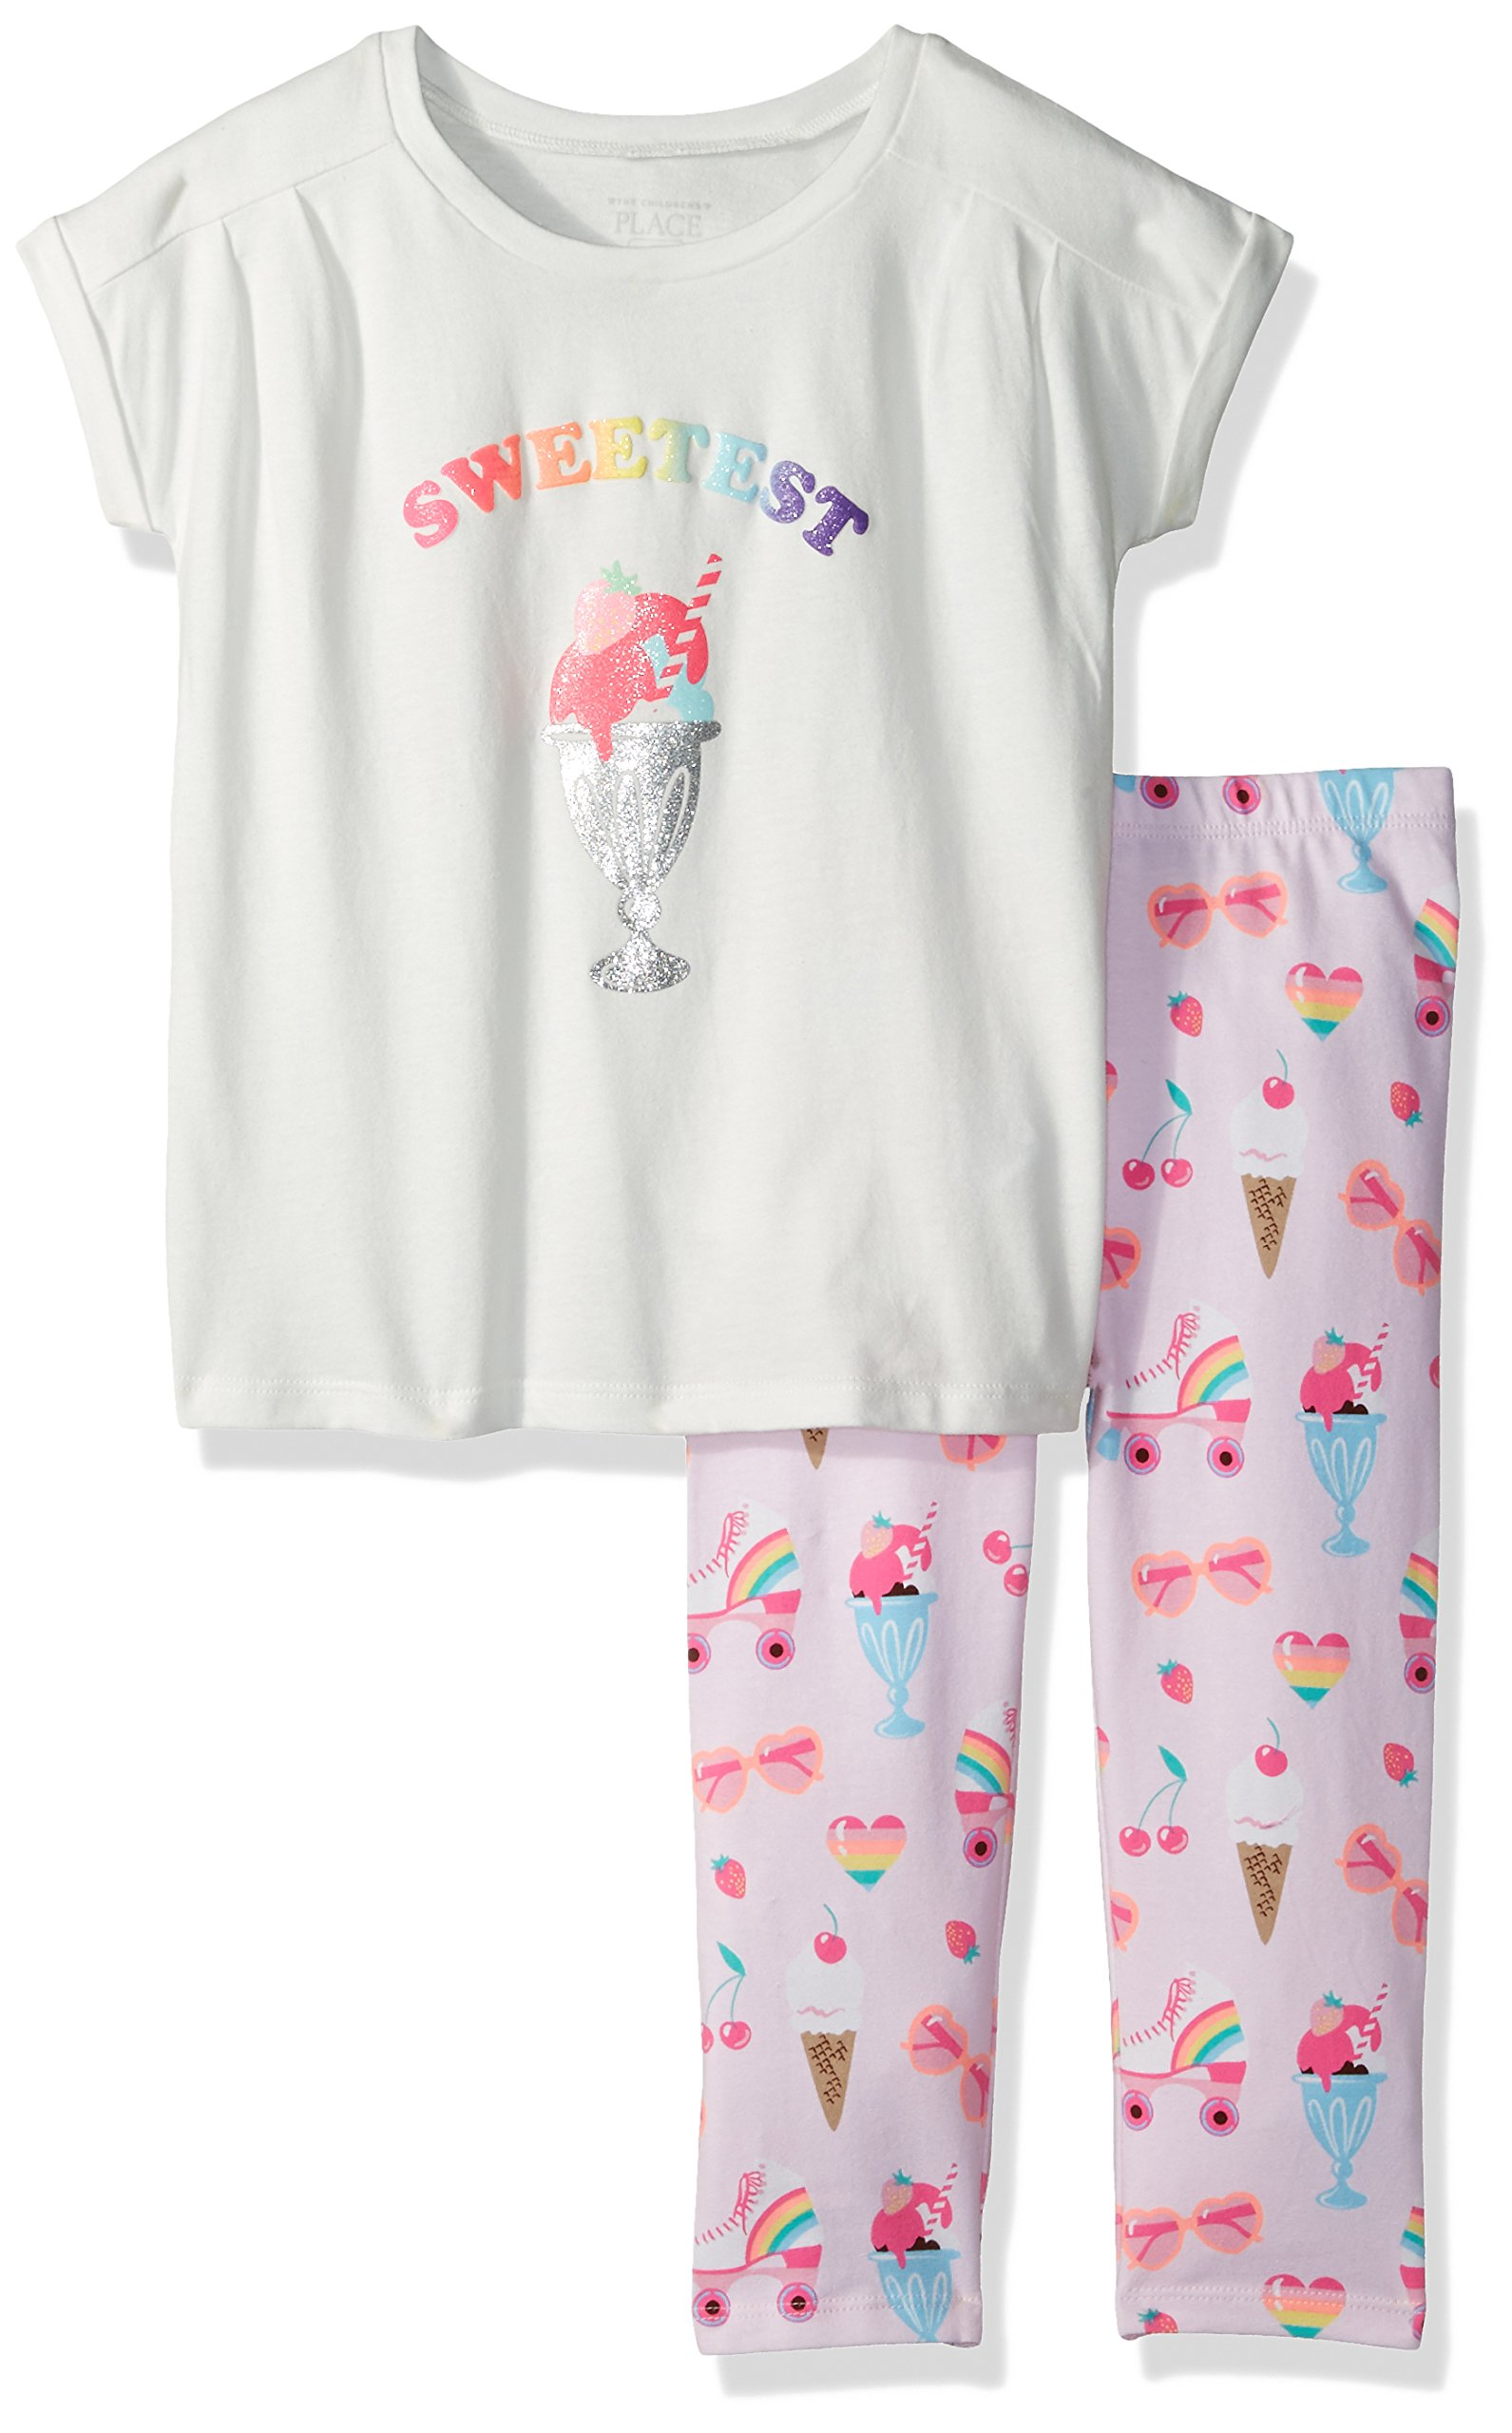 The Children's Place Baby Girls' Short Sleeve Top and Leggings Set